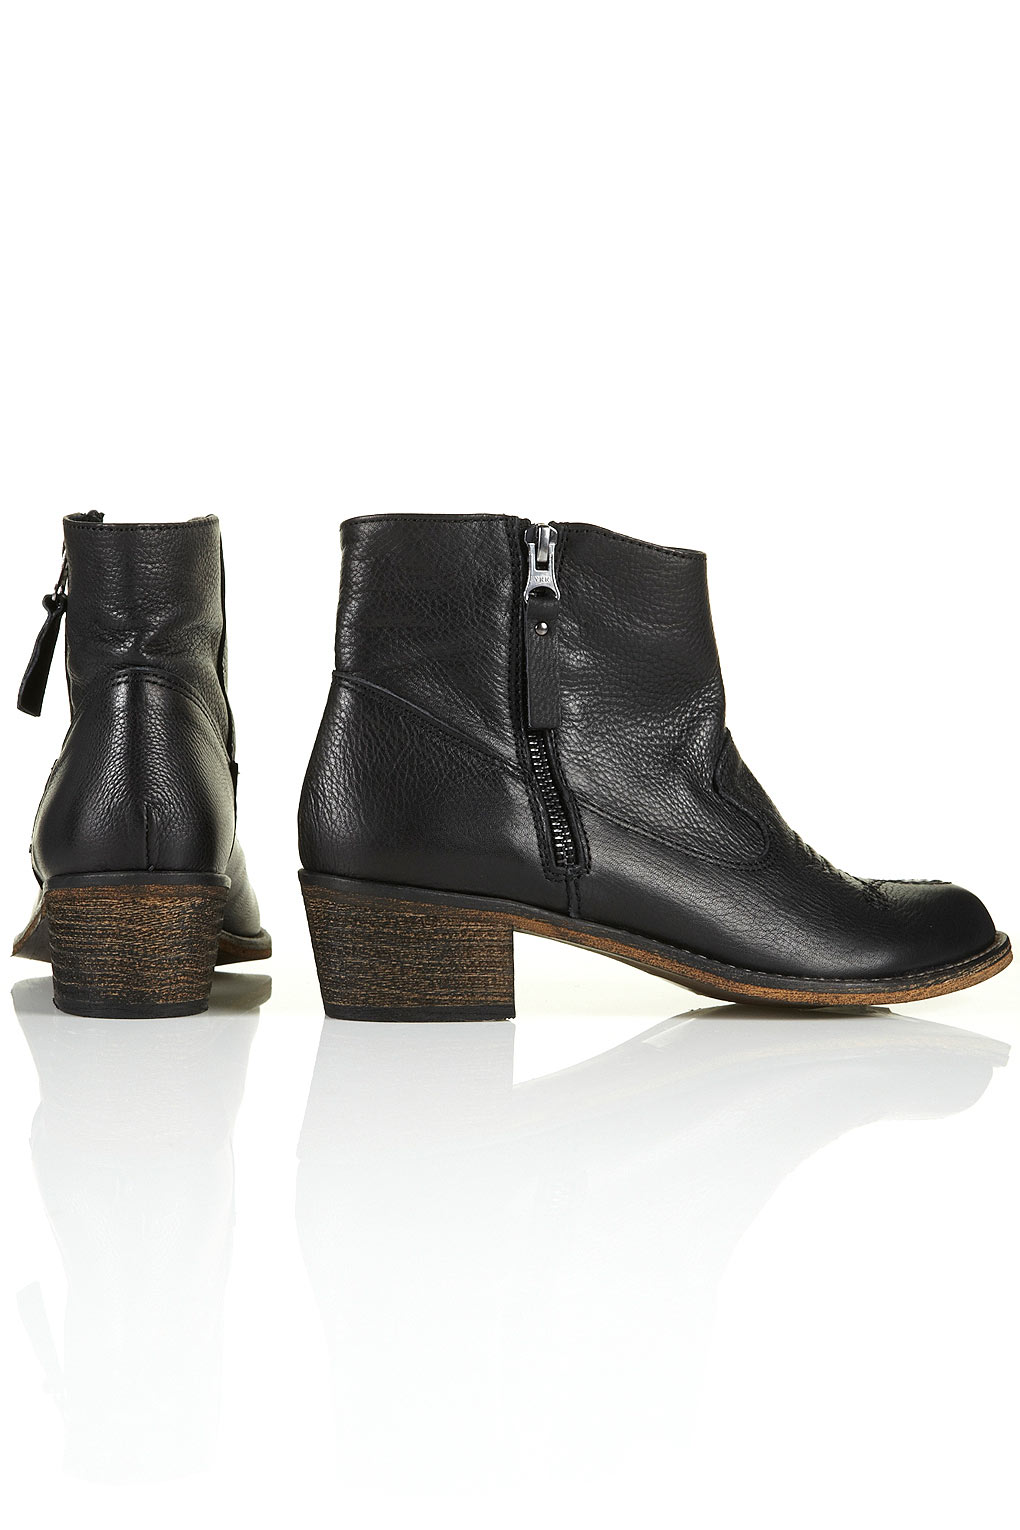 1bba88b9978a Lyst - TOPSHOP Artreu Western Ankle Boots in Black